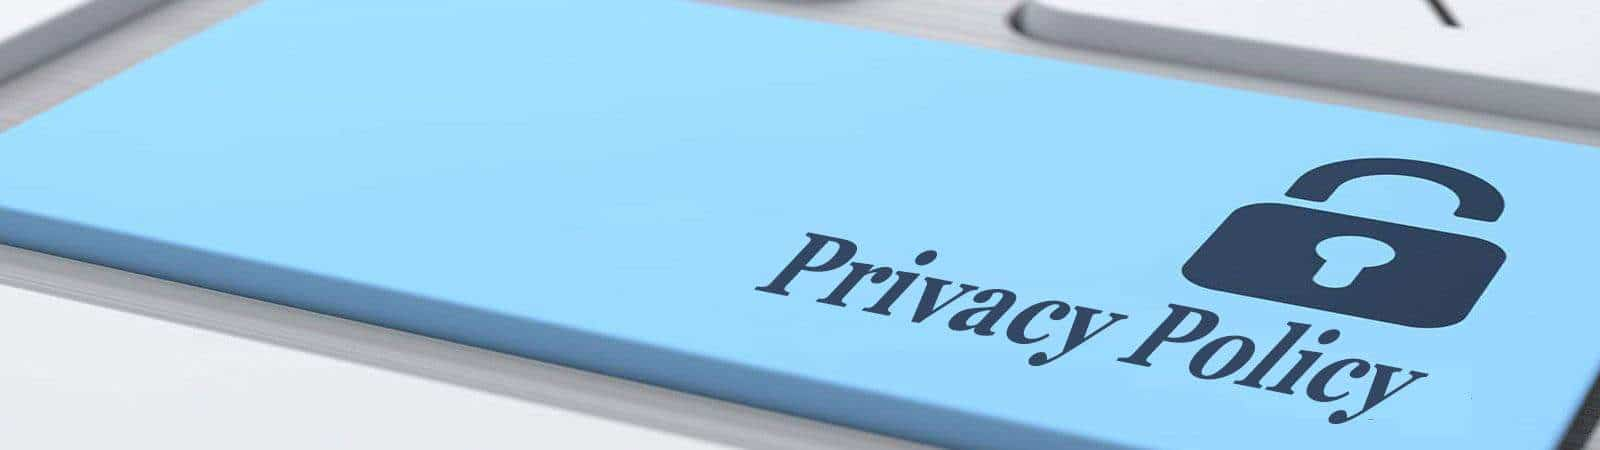 privacy-policy-1600x450